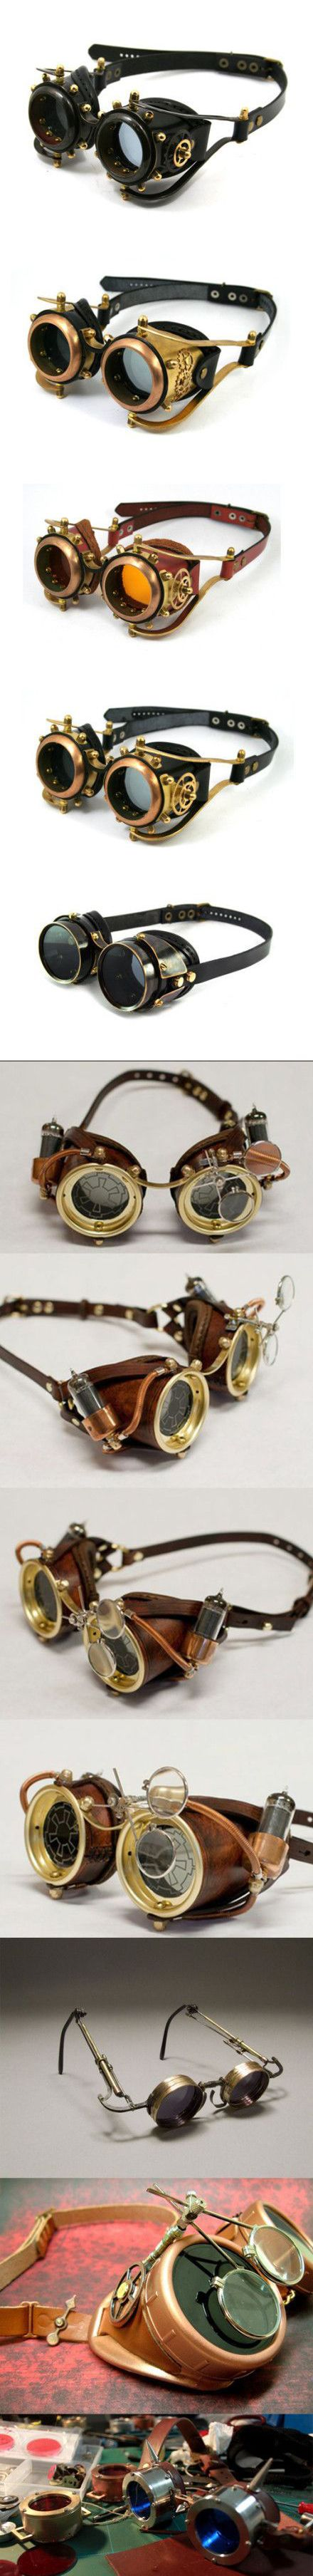 Cool steampunk eyewear https://www.steampunkartifacts.com/collections/steampunk-glasses